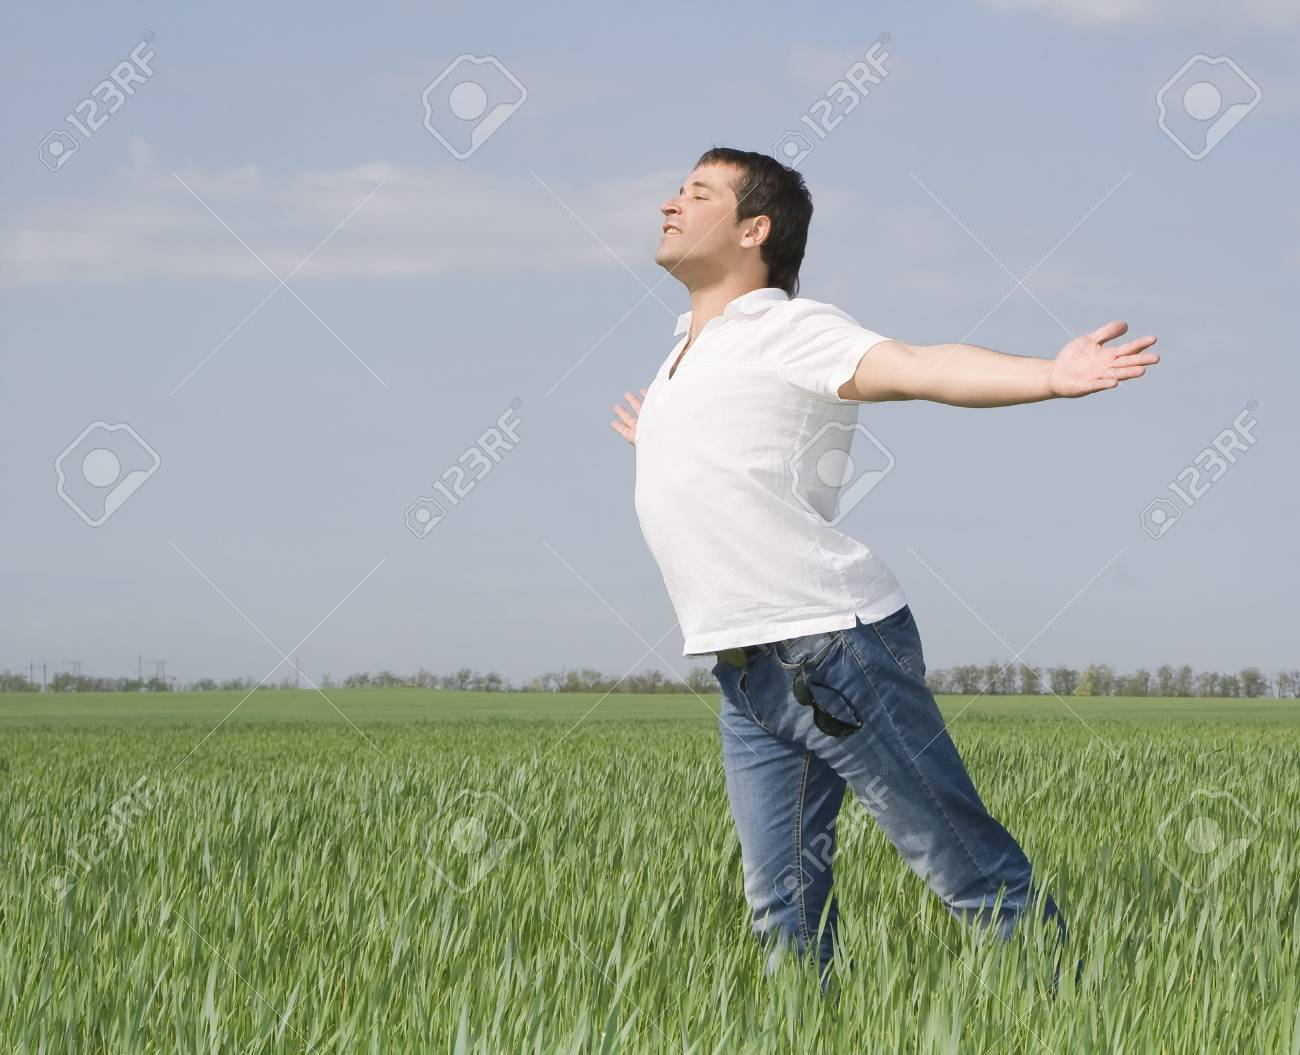 young man moves in a green field of grass Stock Photo - 7347993